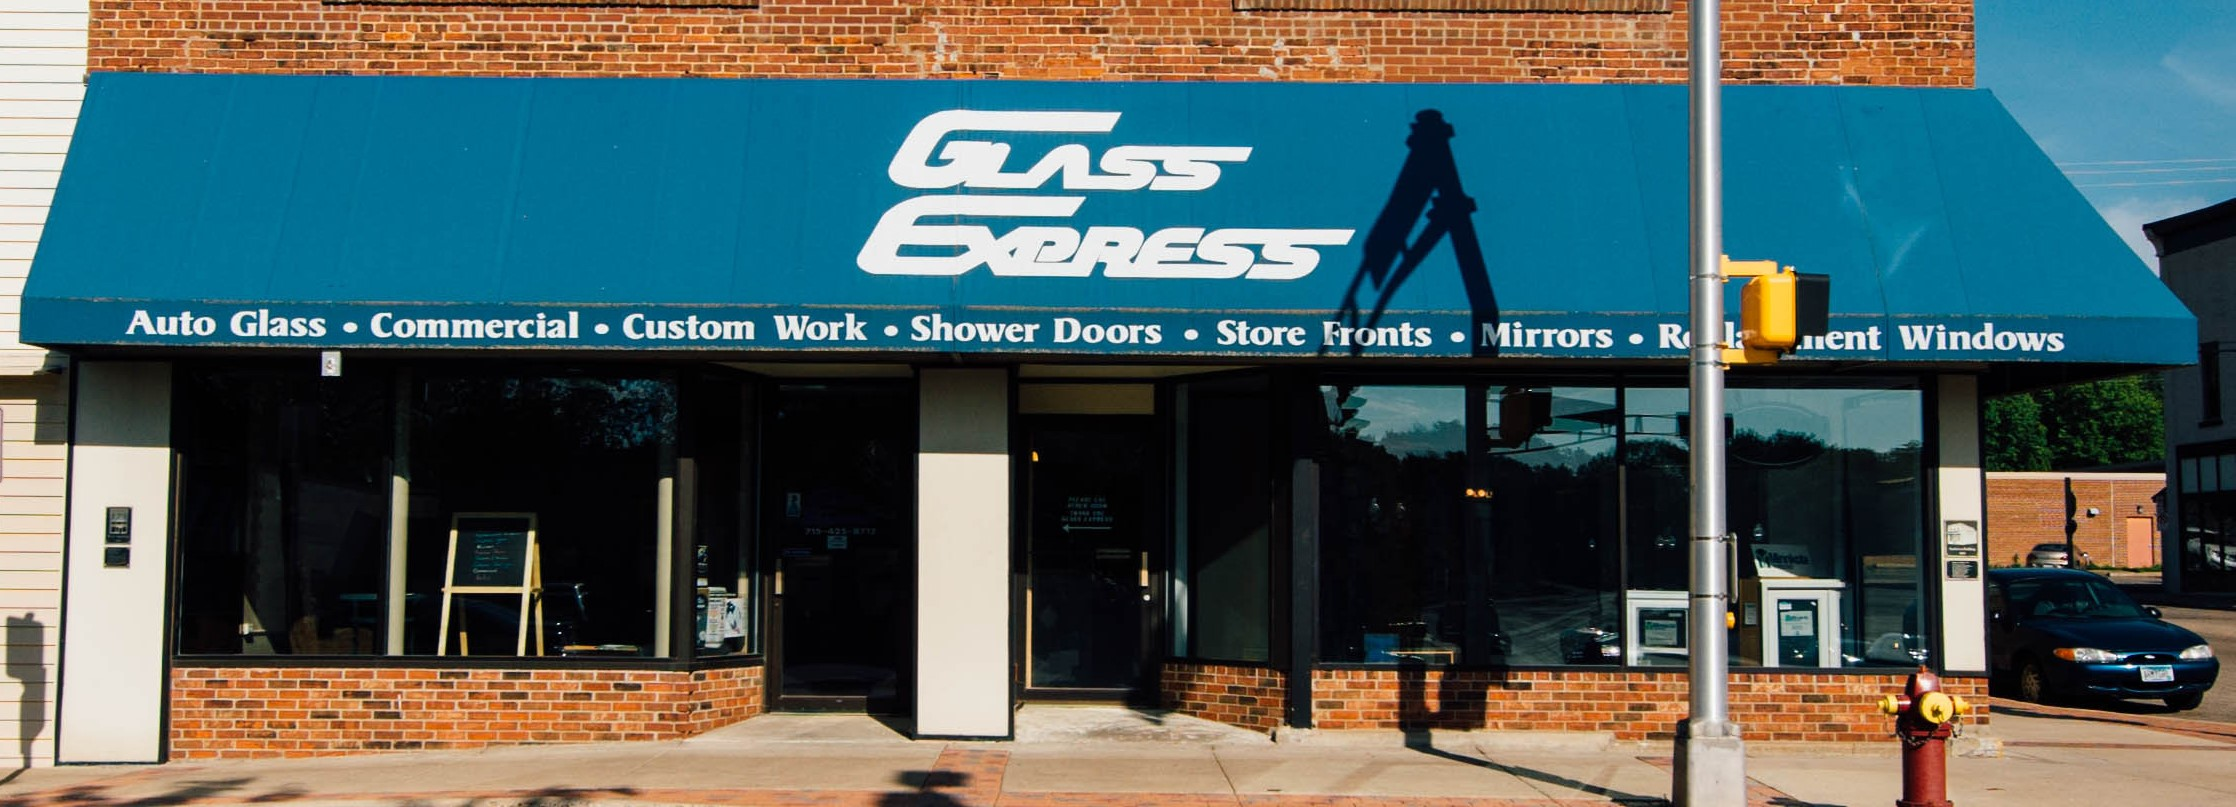 Glass Express Inc.